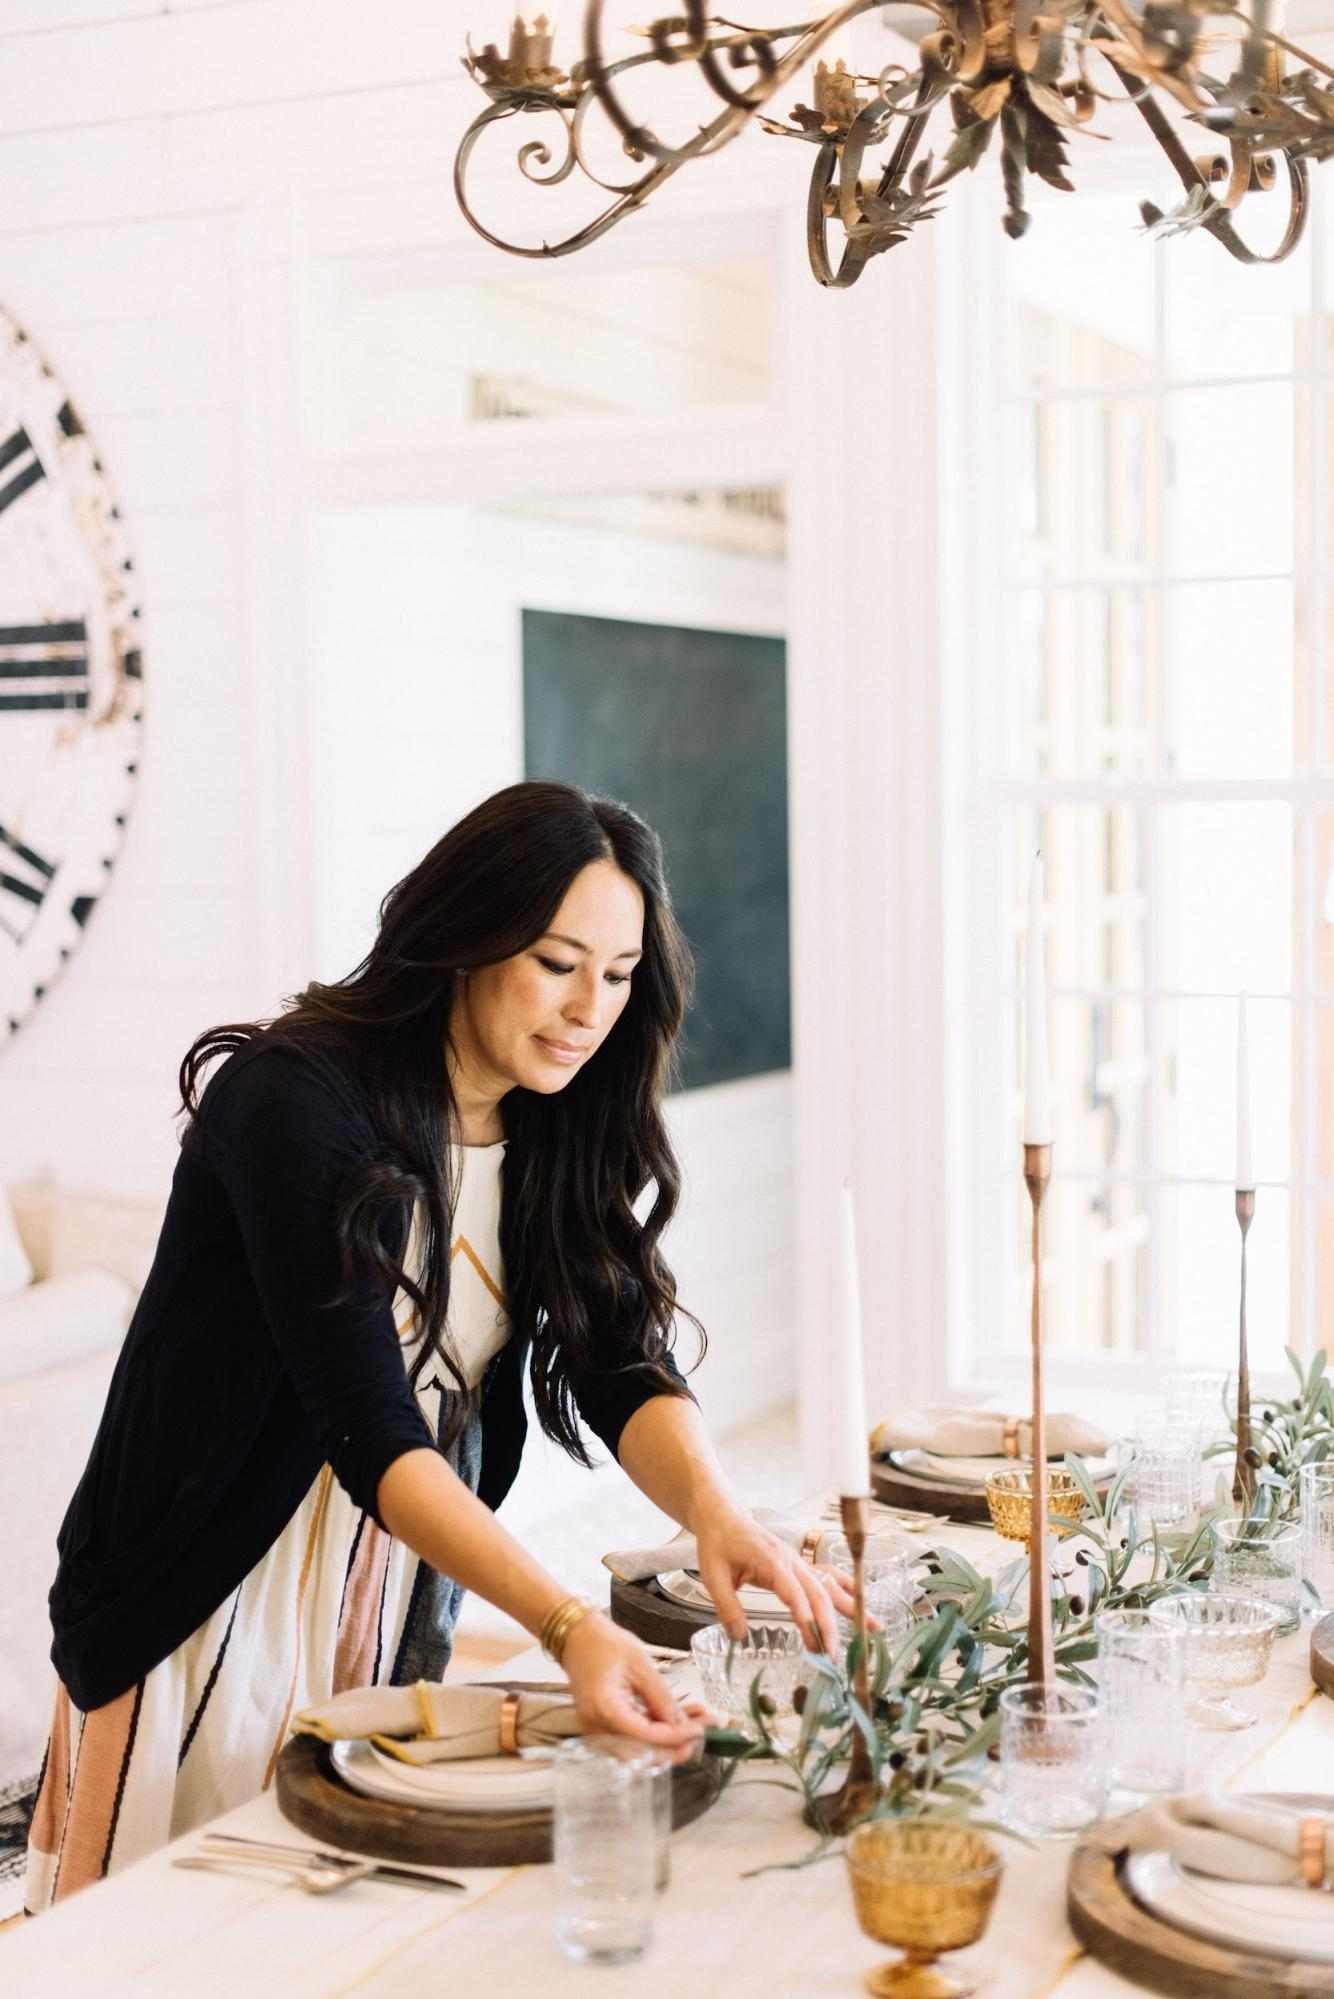 Joanna Gaines Reveals She Sets her Thanksgiving Table with Faux Greenery — Plus More Tips!